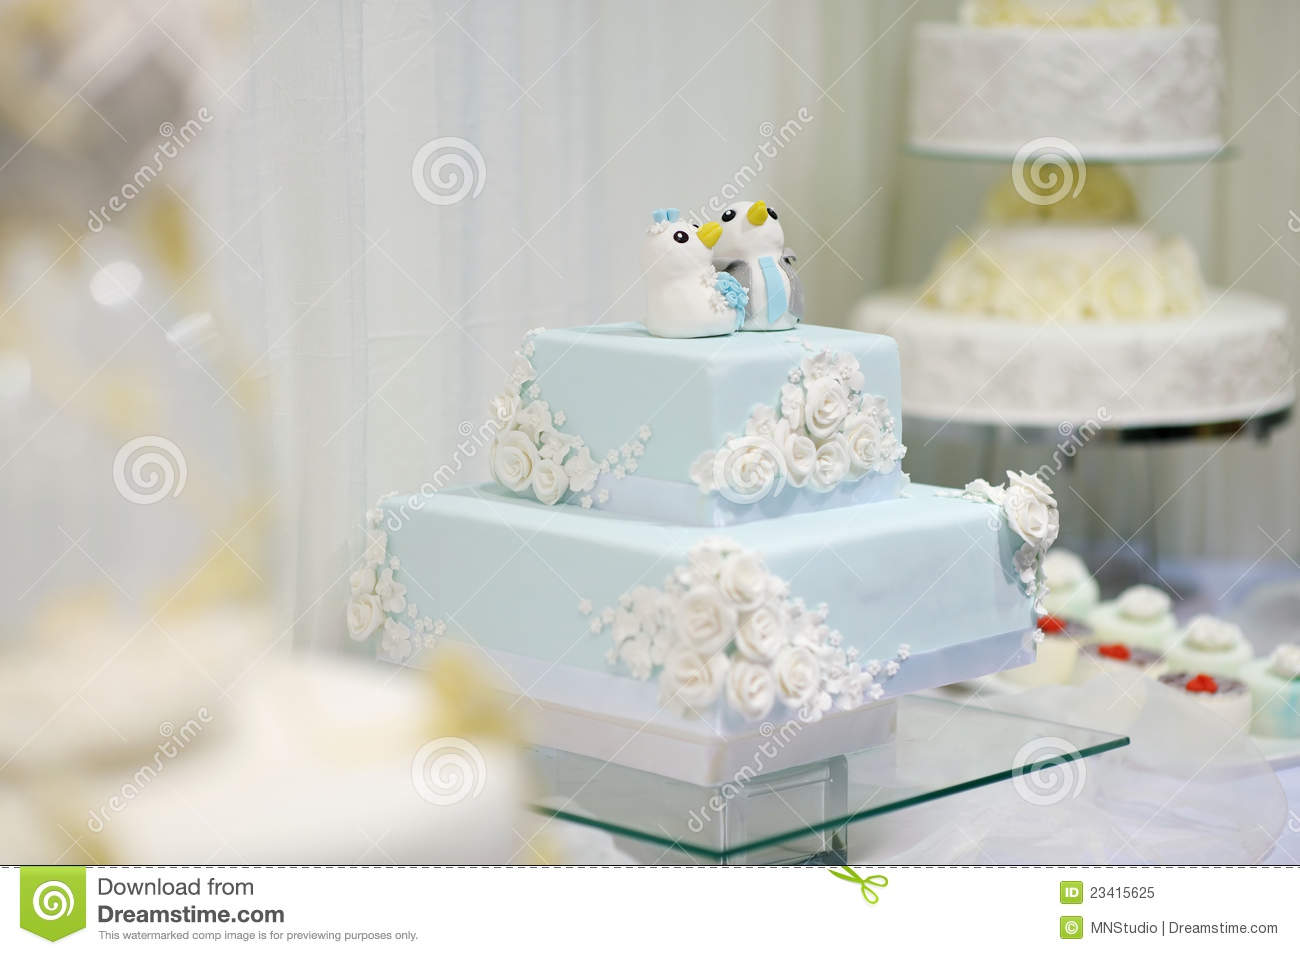 Delicious Funny Wedding Cake Stock Image - Image of fancy, floral ...